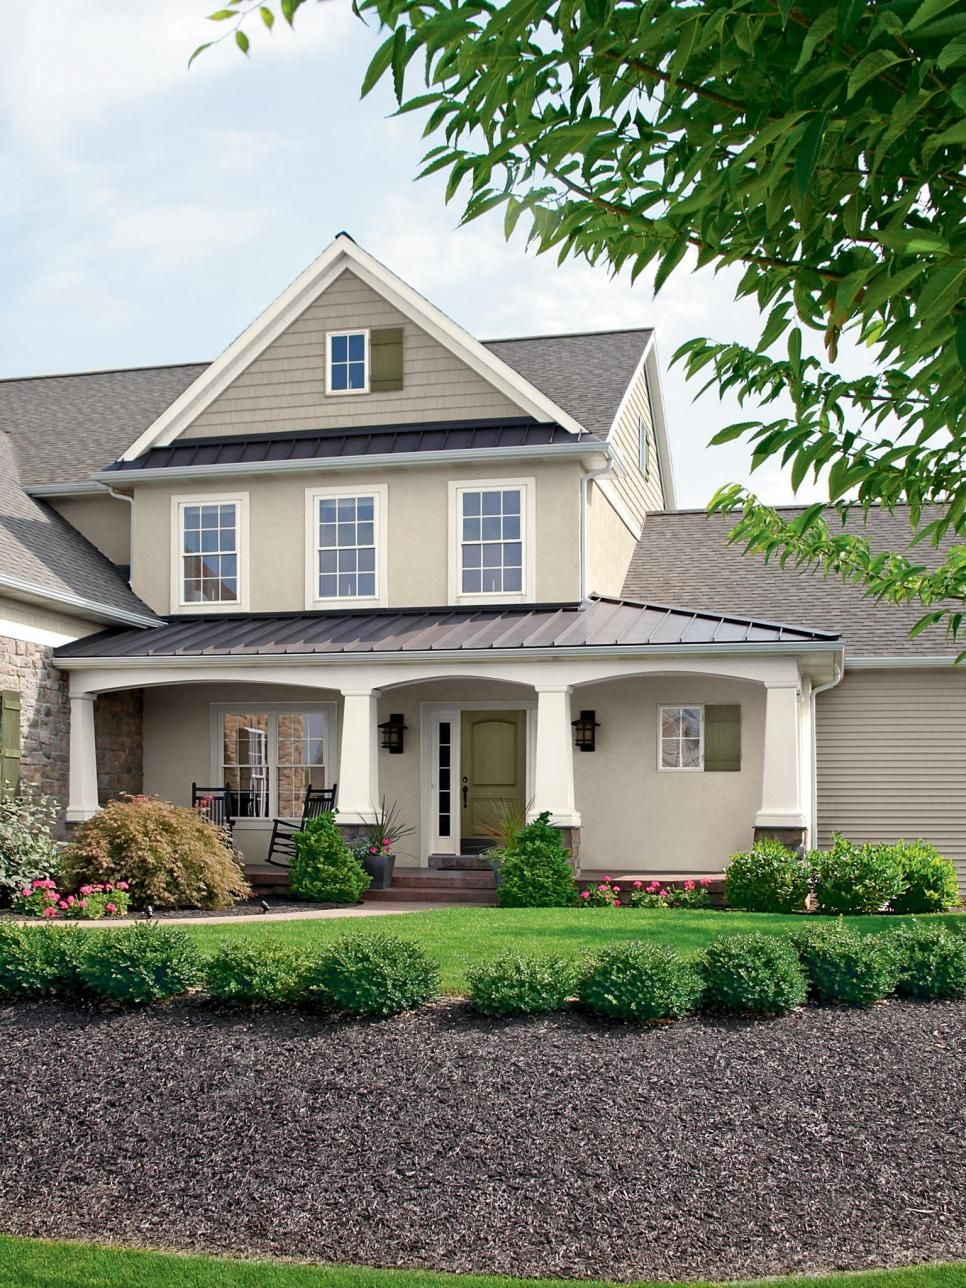 28 inviting home exterior color ideas exterior paint on exterior home paint ideas pictures id=43761